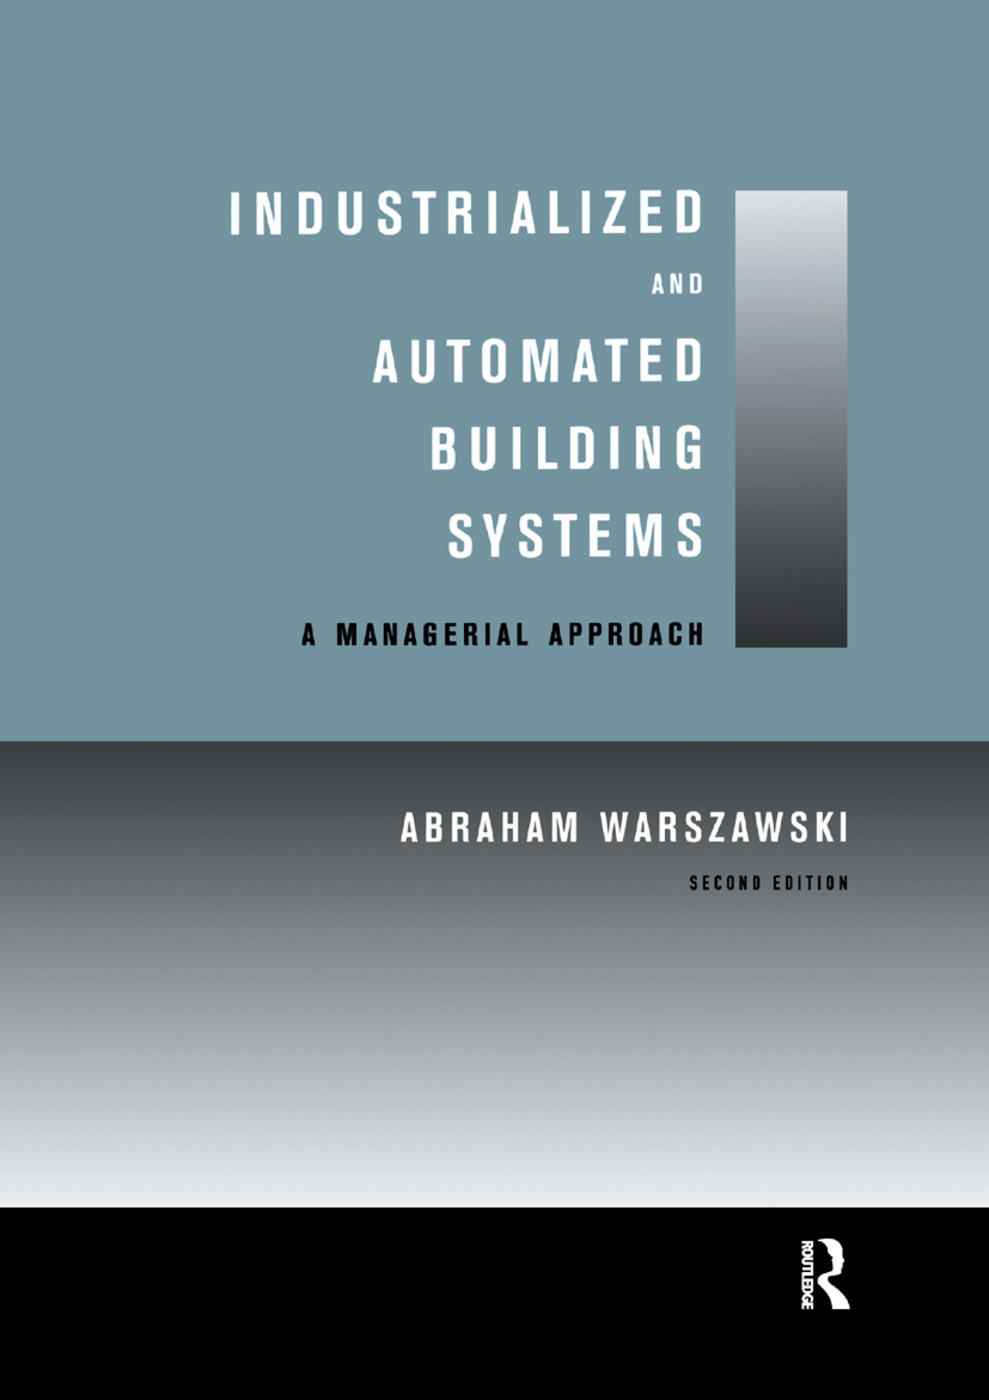 Industrialized and Automated Building Systems